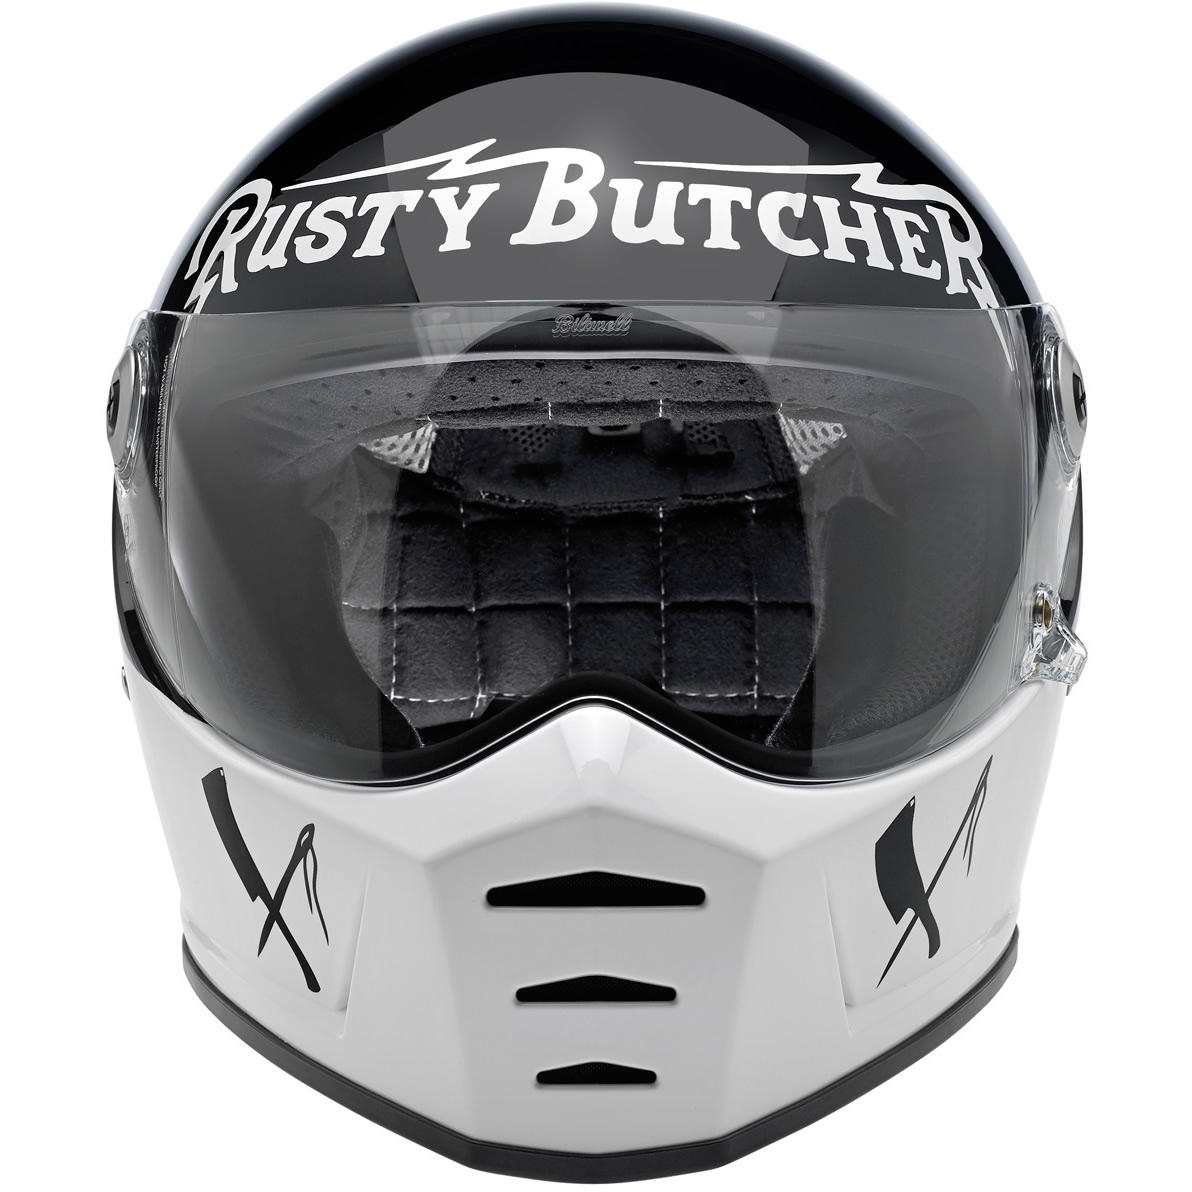 Lane Splitter helmet - Rusty Butcher